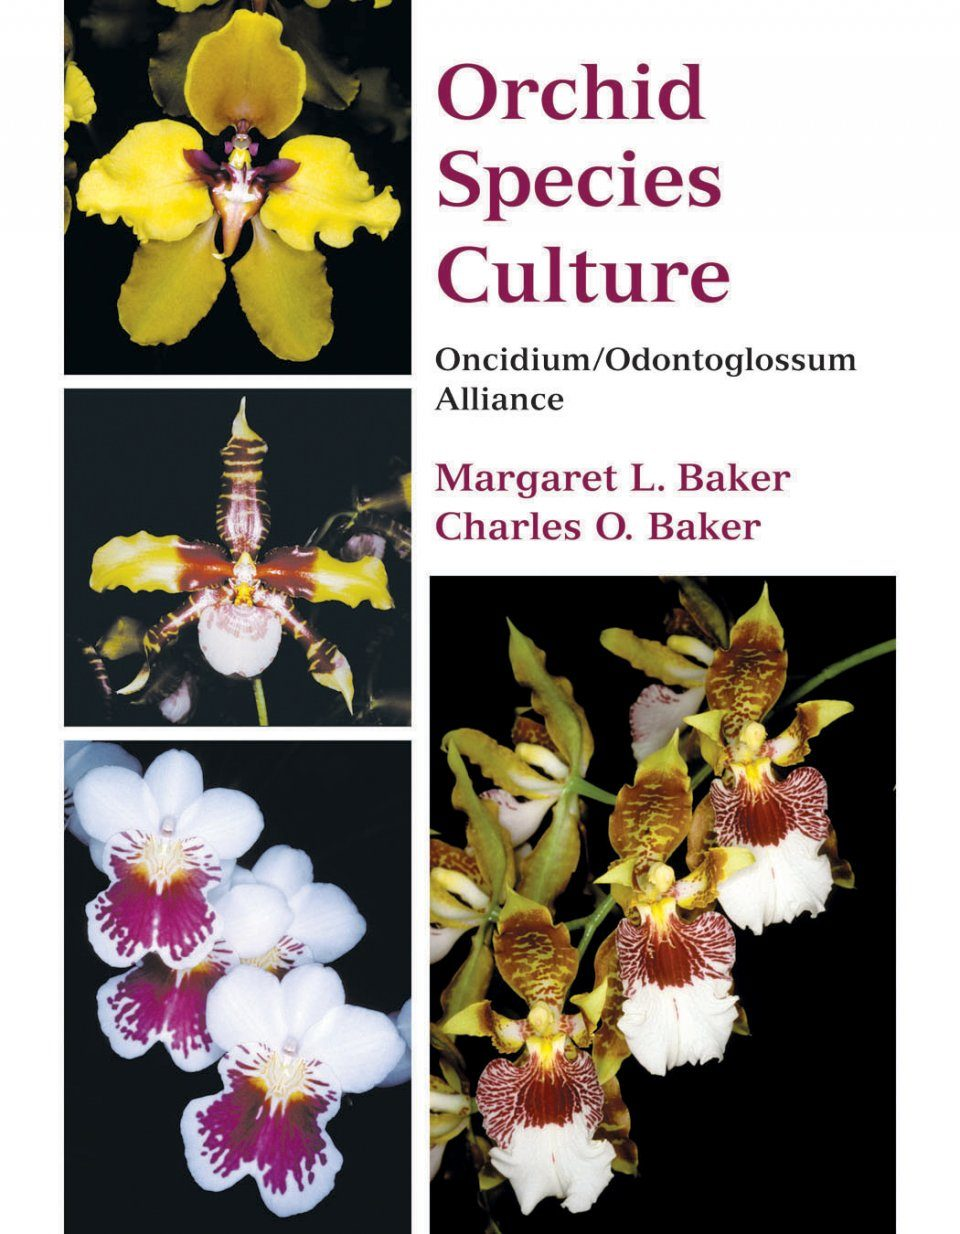 Orchid Species Culture: Oncidium/Odontoglossum Alliance